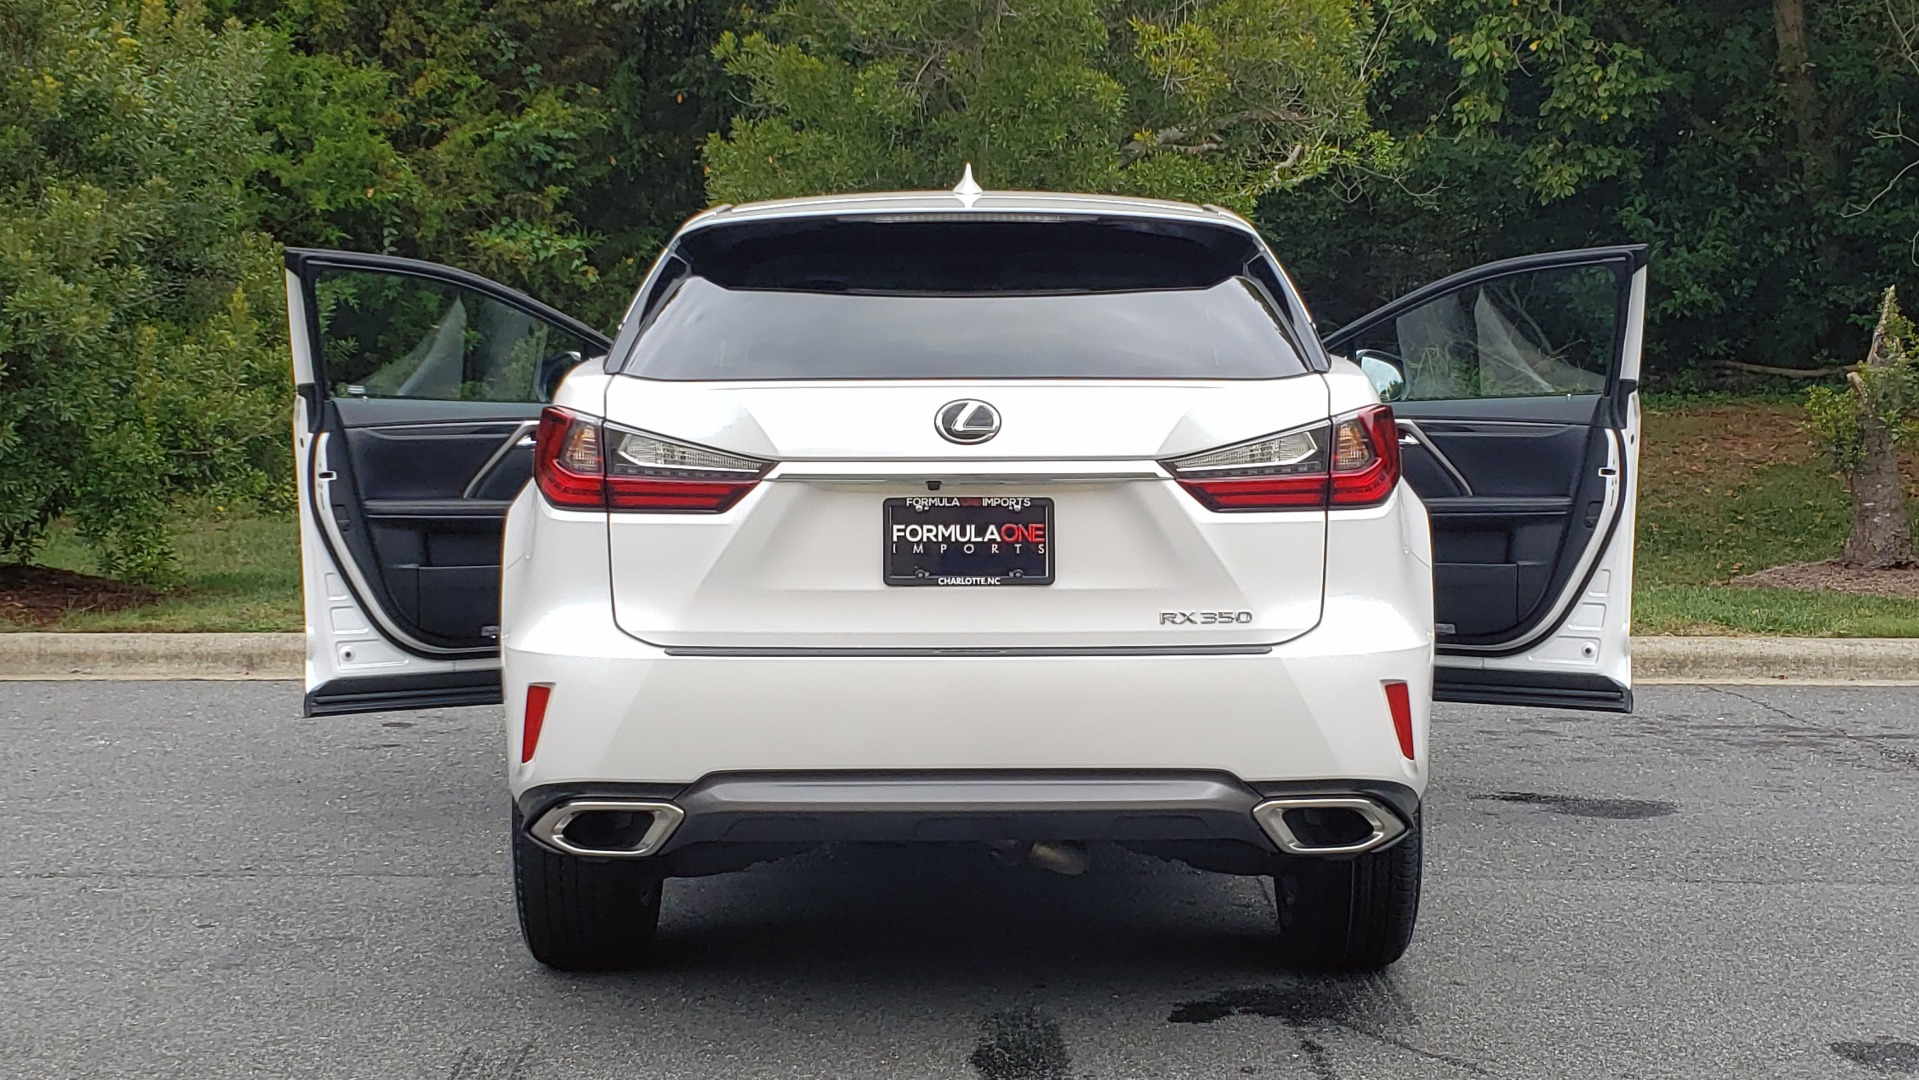 Used 2016 Lexus RX 350 FWD / 4-DR / 3.5L V6 / 8-SPD AUTO / LEATHER / REARVIEW for sale Sold at Formula Imports in Charlotte NC 28227 30